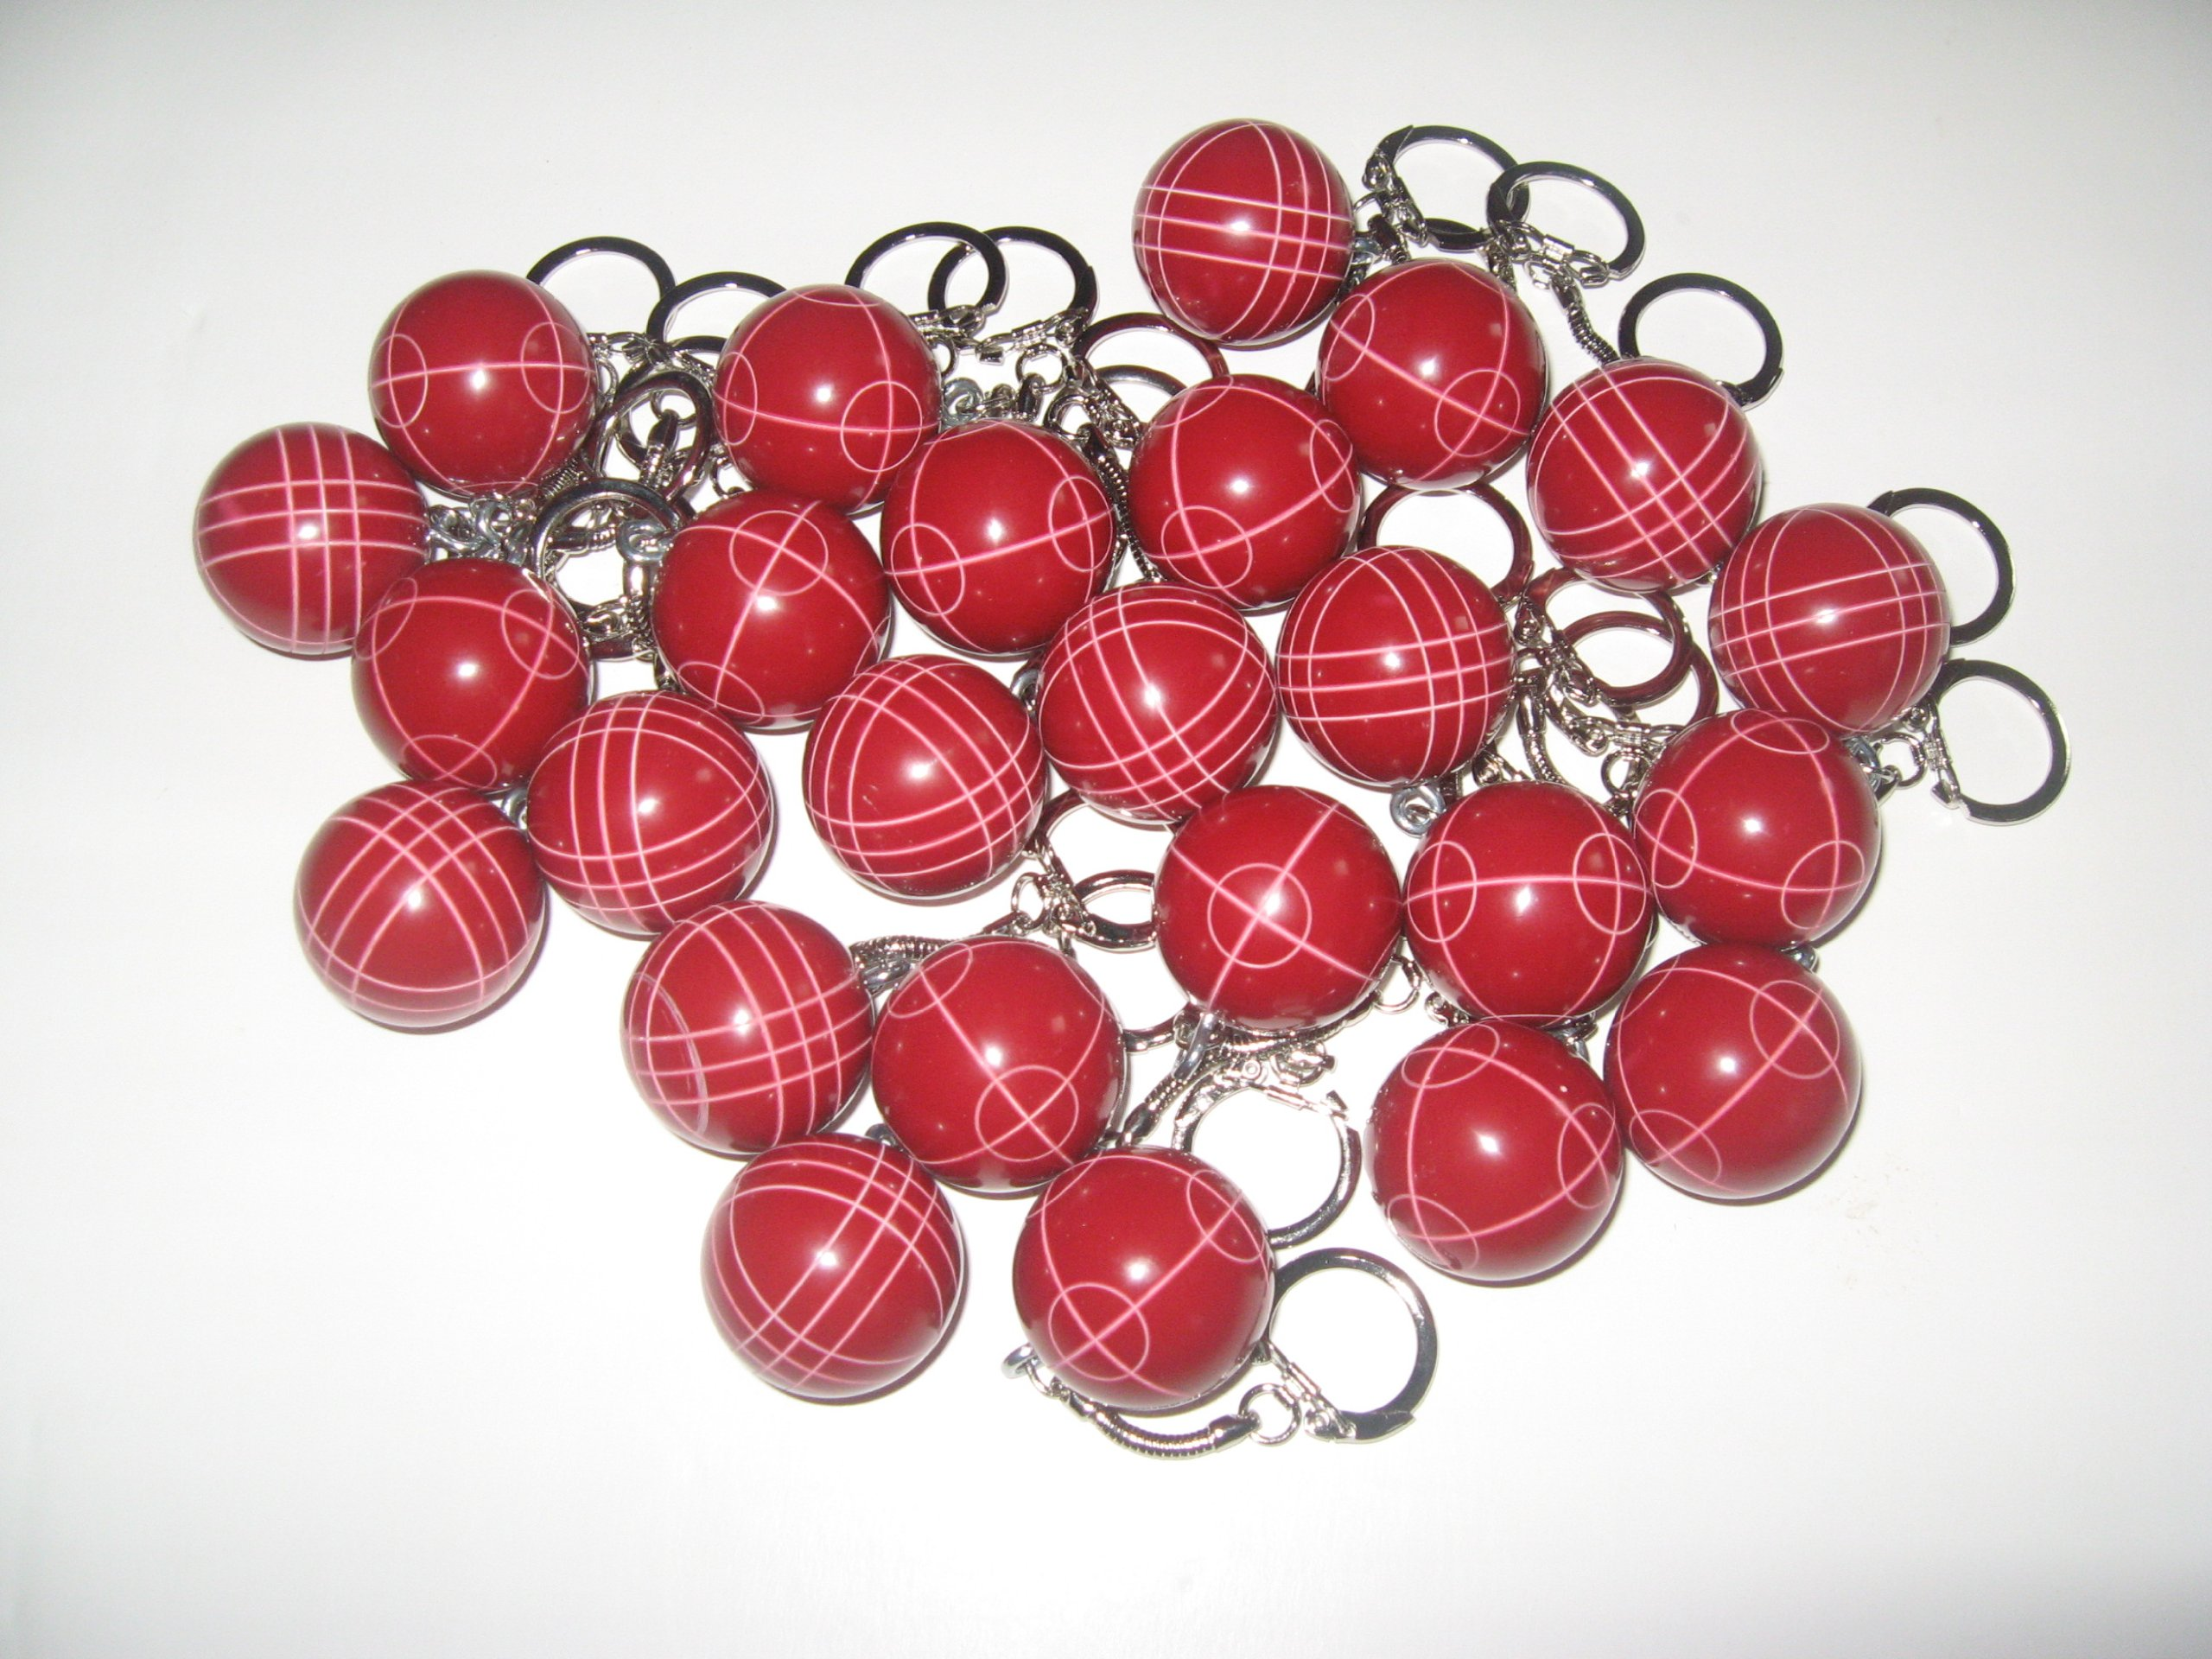 Bocce Ball Keychain - pack of 25 red by BuyBocceBalls